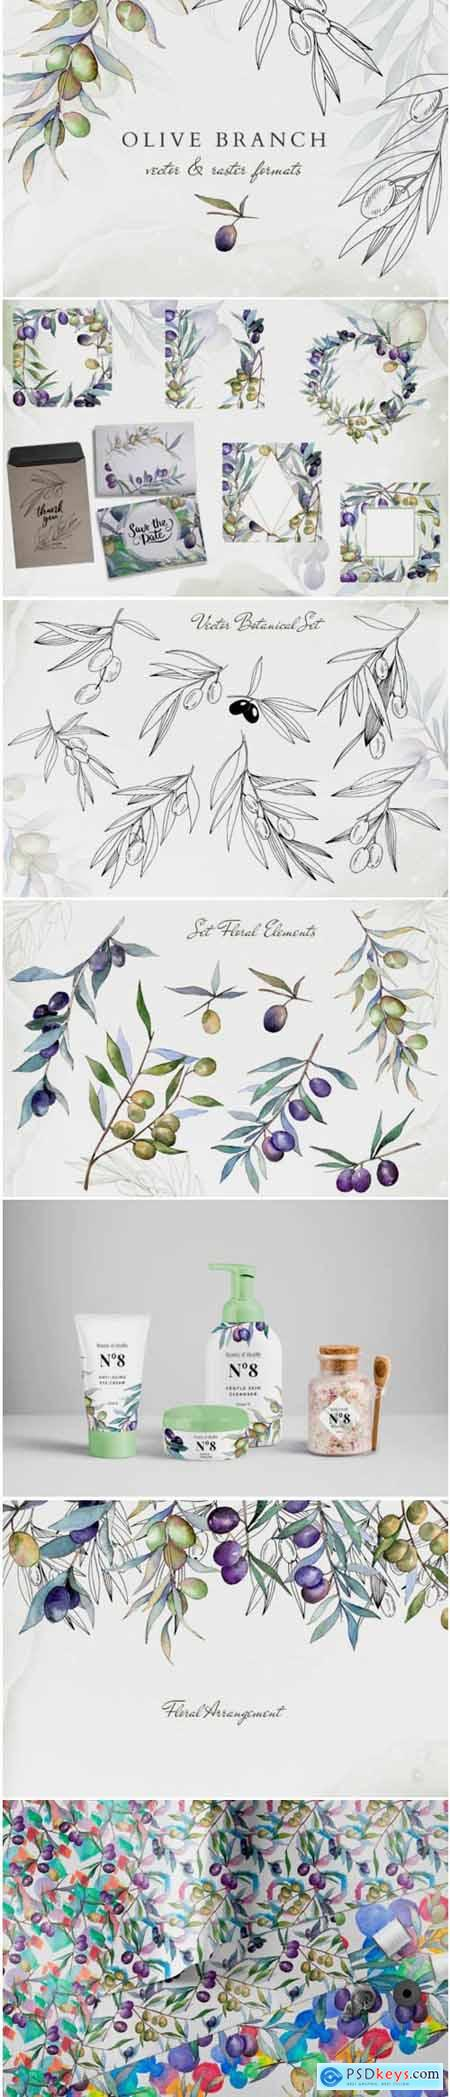 Olive Branches Collection Watercolor